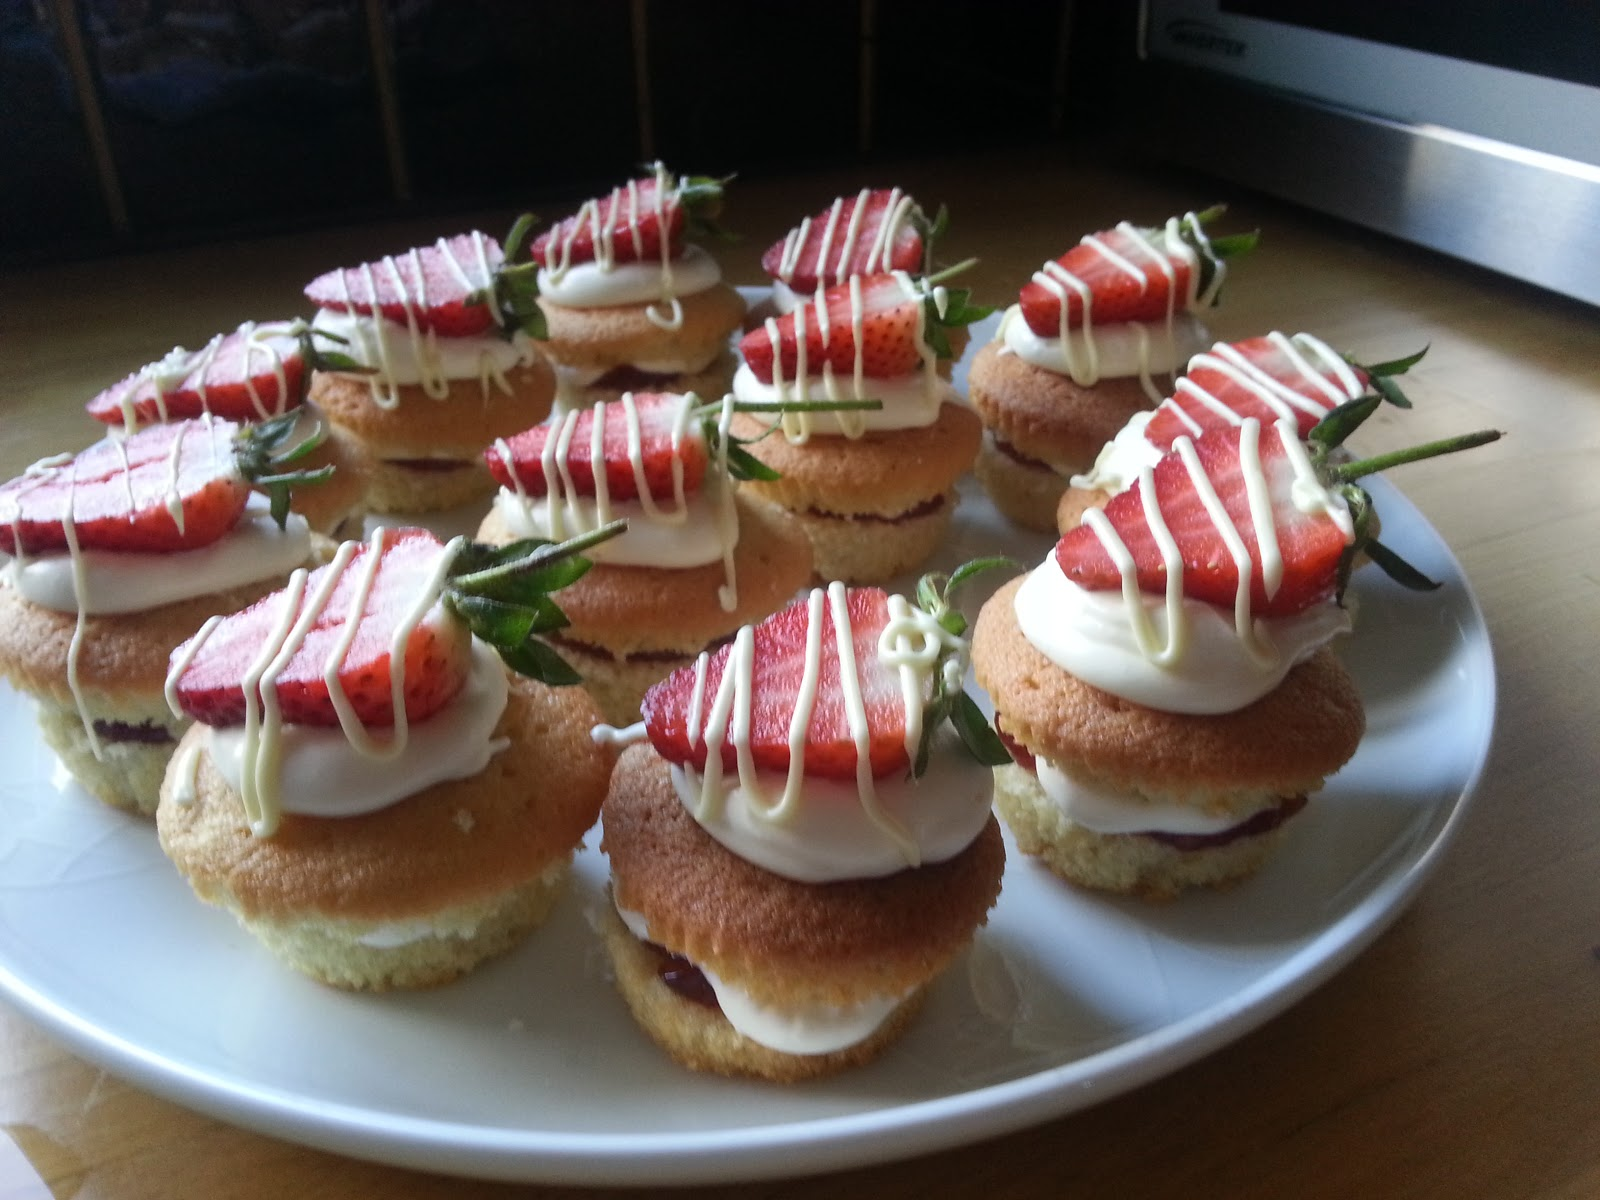 Baking Crazy Mini Strawberries And Cream Cakes By Lorraine Pascale 14 4 13